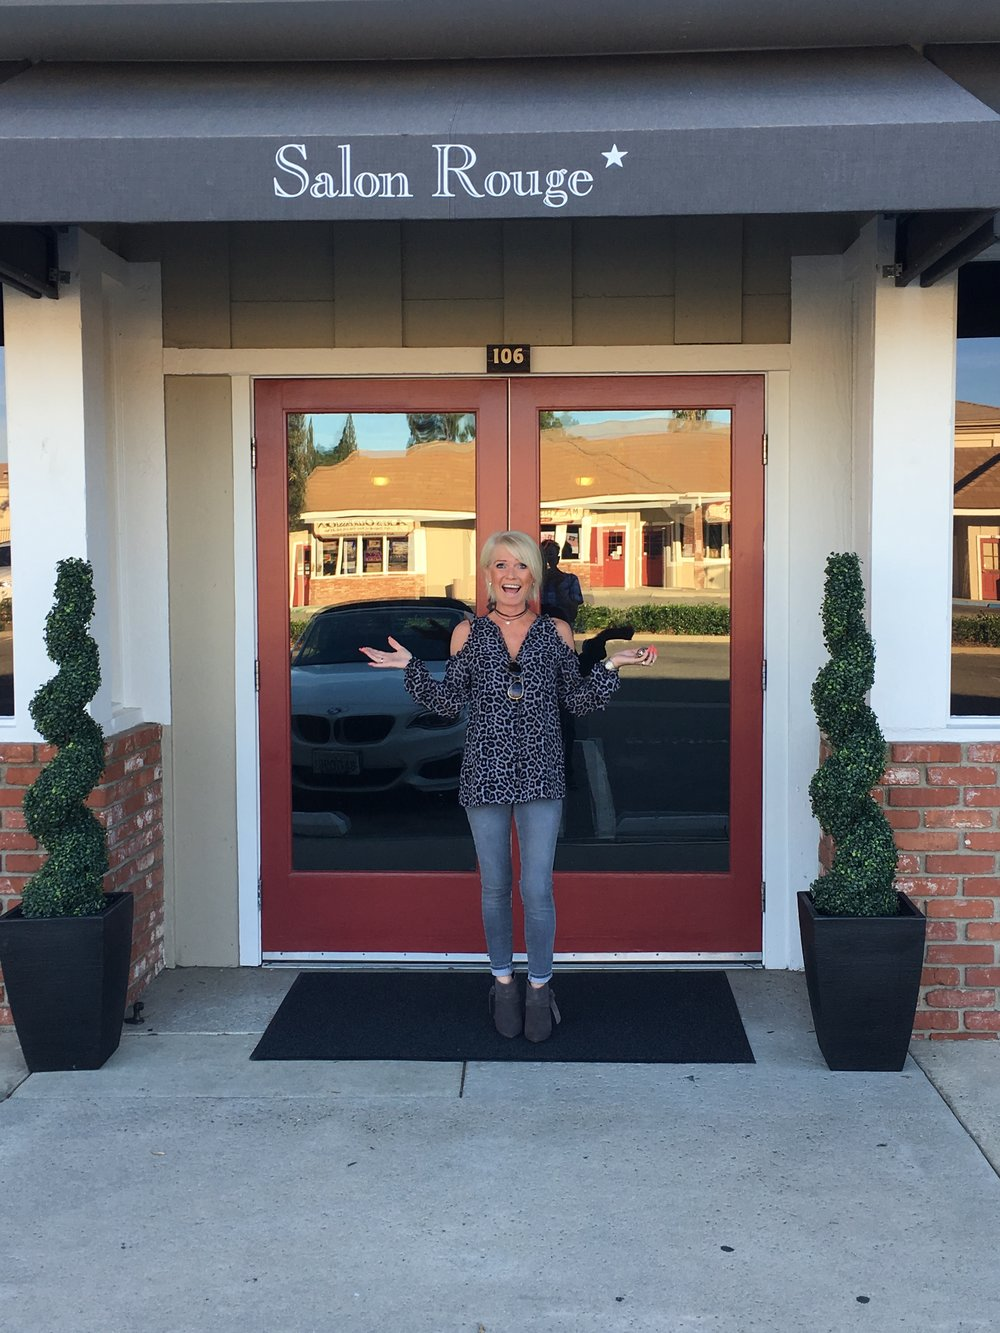 Jules Owen poses outside of the Salon Rouge front doors the first day in business as the new owner.   November 1st, 2018